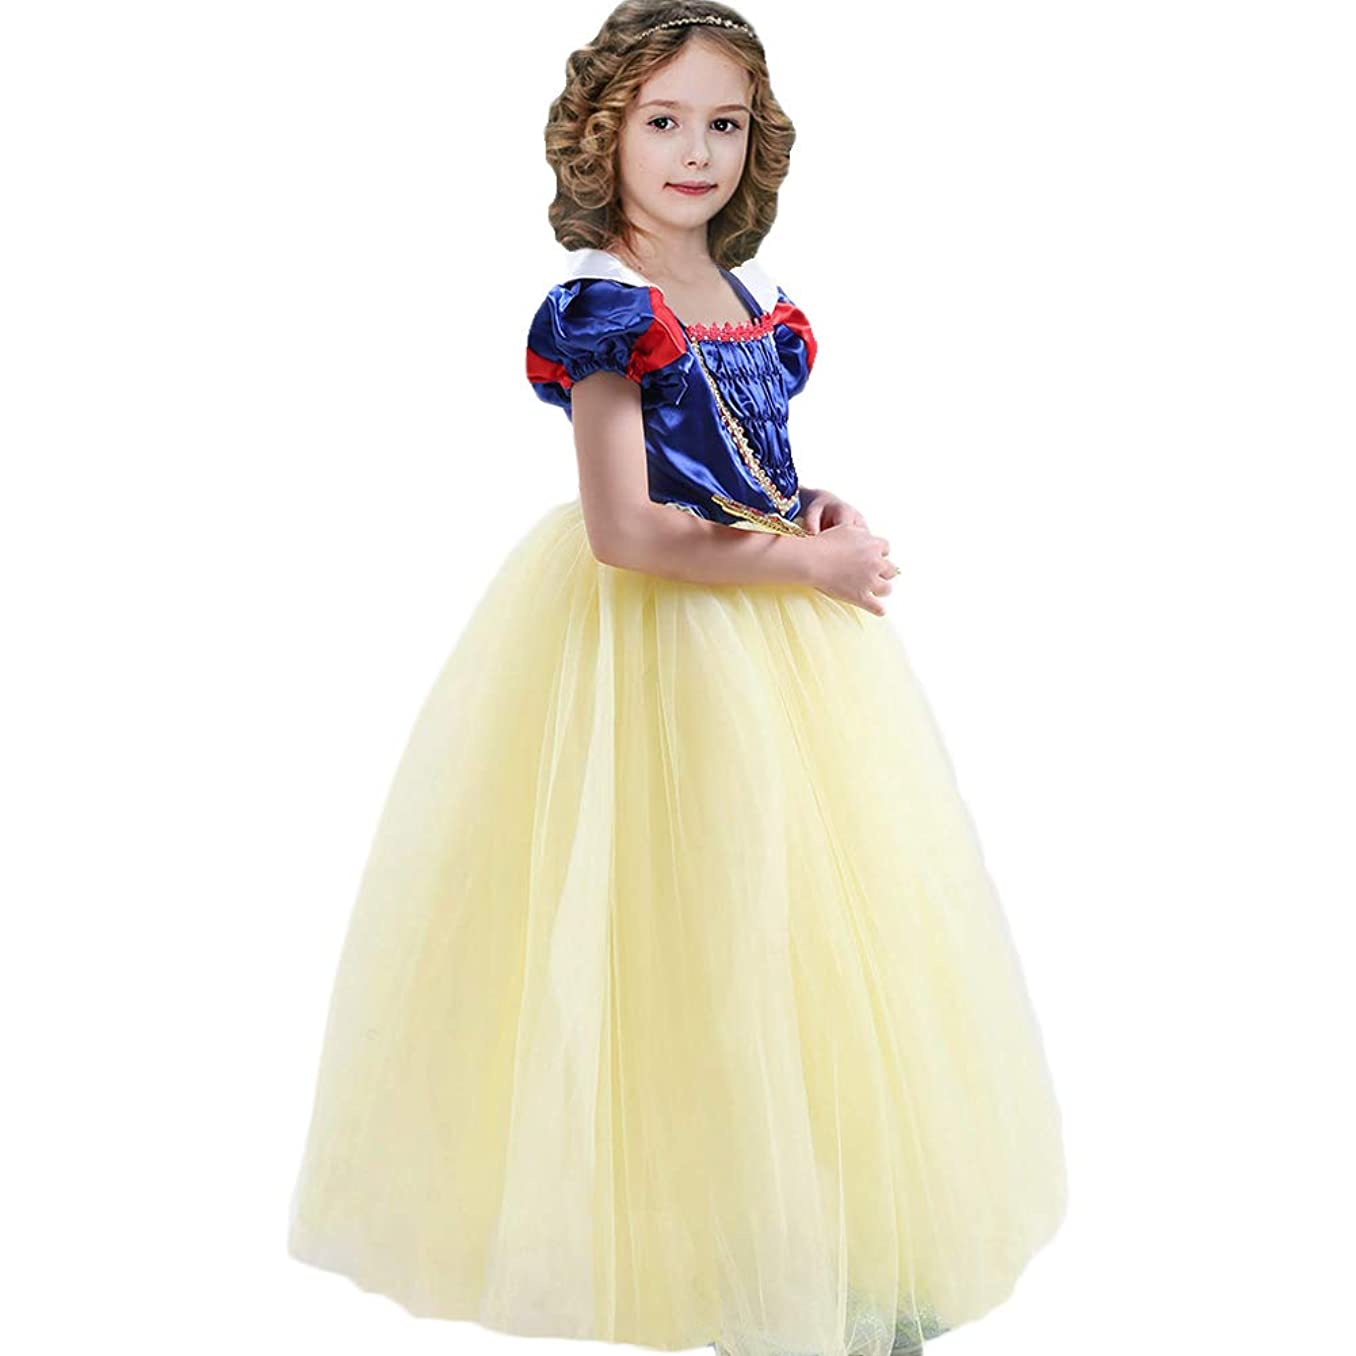 CQDY Snow White Costume for Girls Dress up Princess Dress Halloween/Party/Christmas Special Occasion for 2-11T